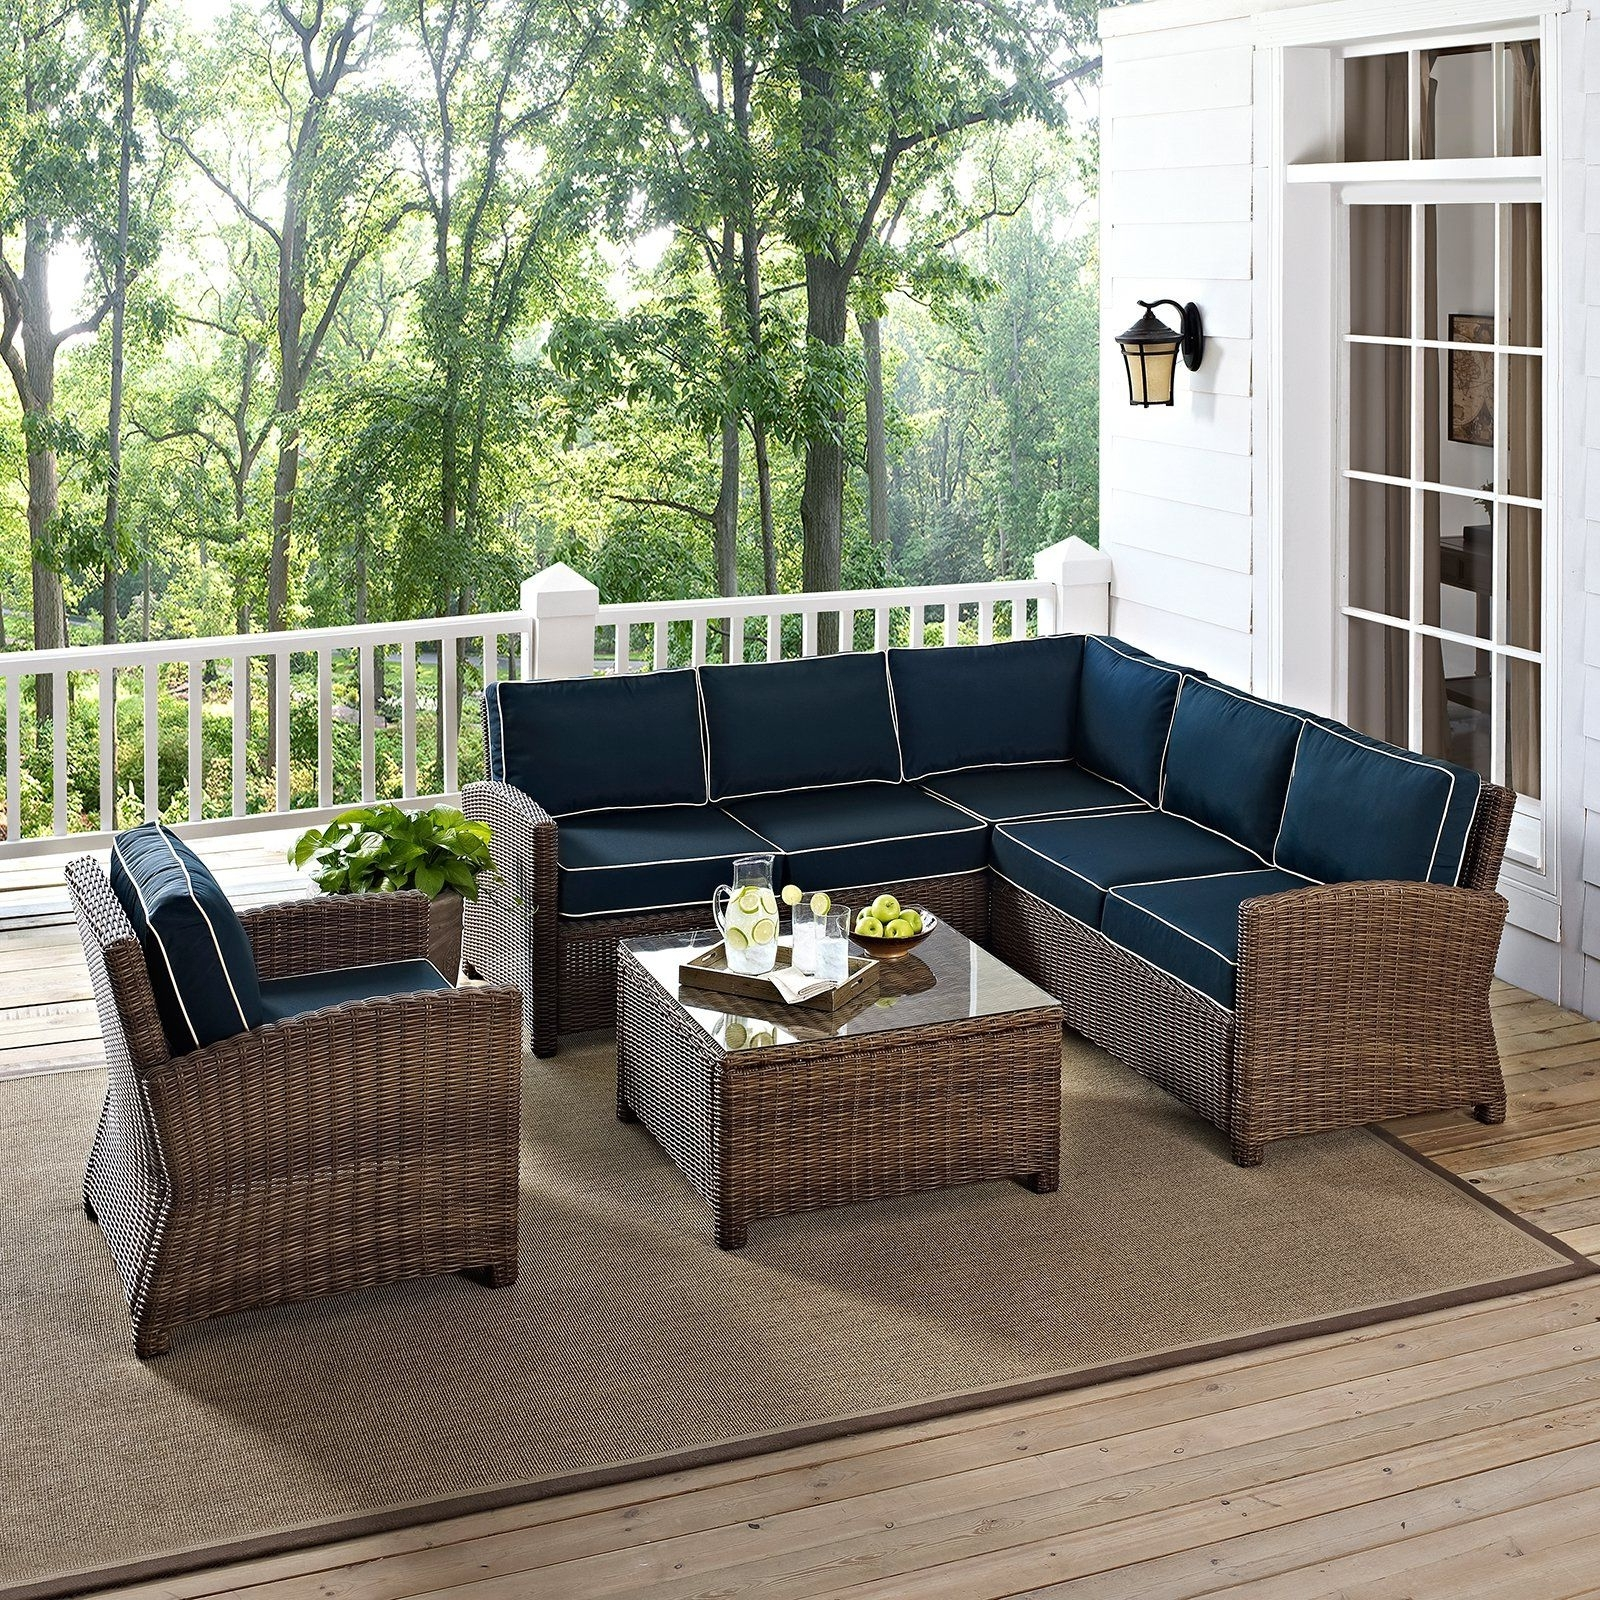 2018 Crosley Bradenton 5 Piece Outdoor Wicker Conversation Set Pertaining To 5 Piece Patio Conversation Sets (View 14 of 20)